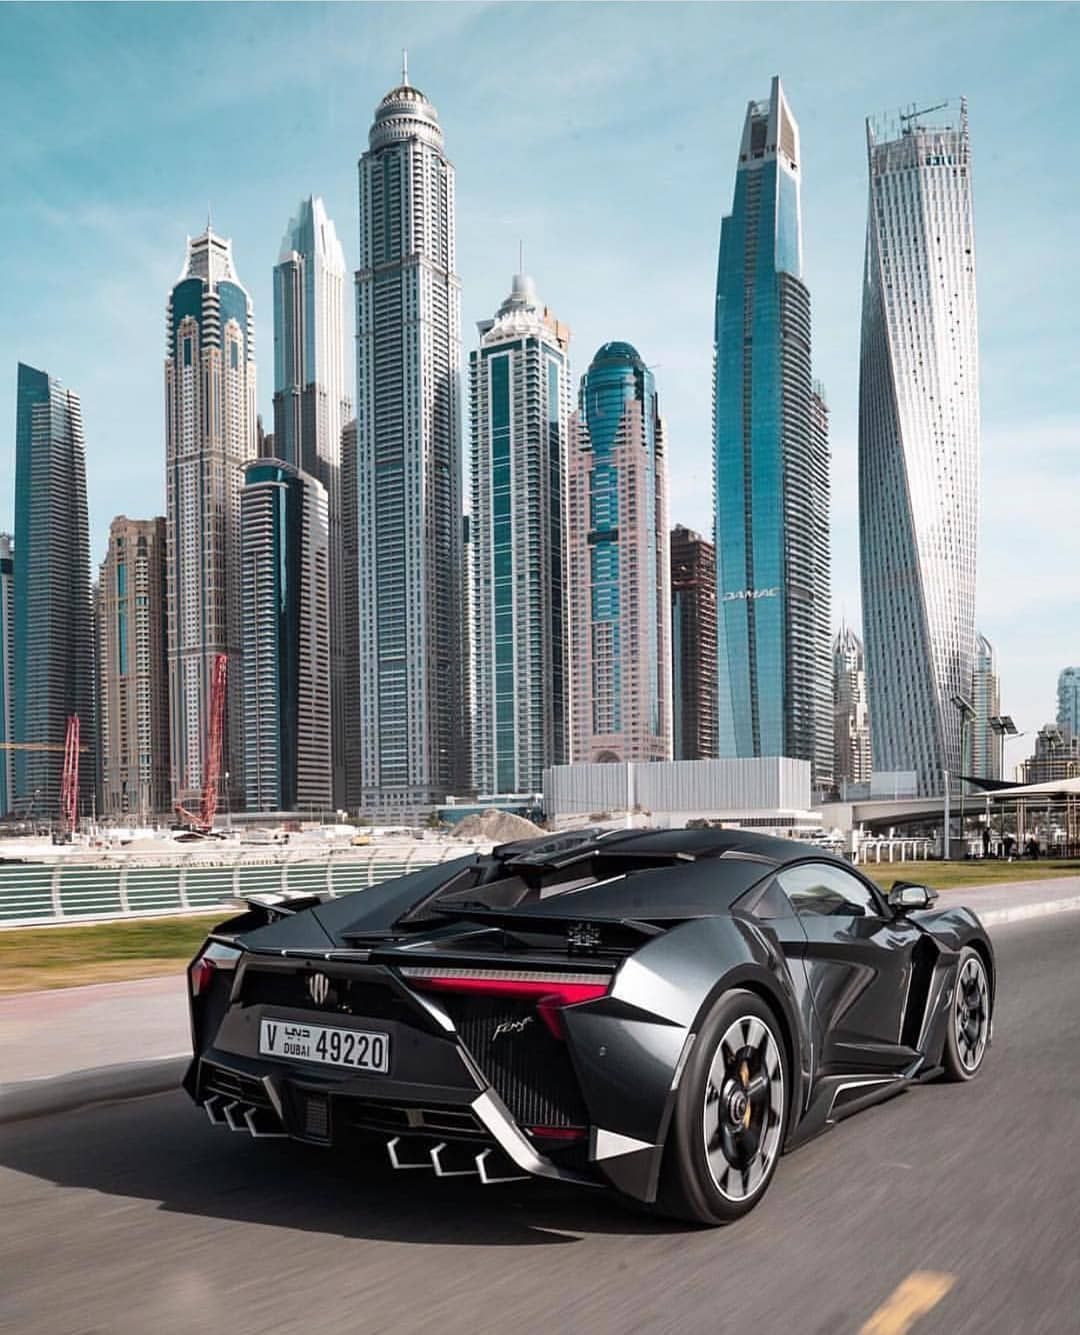 Luxury Motivation Cars On Instagram Lykan Hyperspot Views In The Uae A Whopping 3 4 Million Car That Can Go 0 100 In 2 8 Dubai Cars Super Cars Car